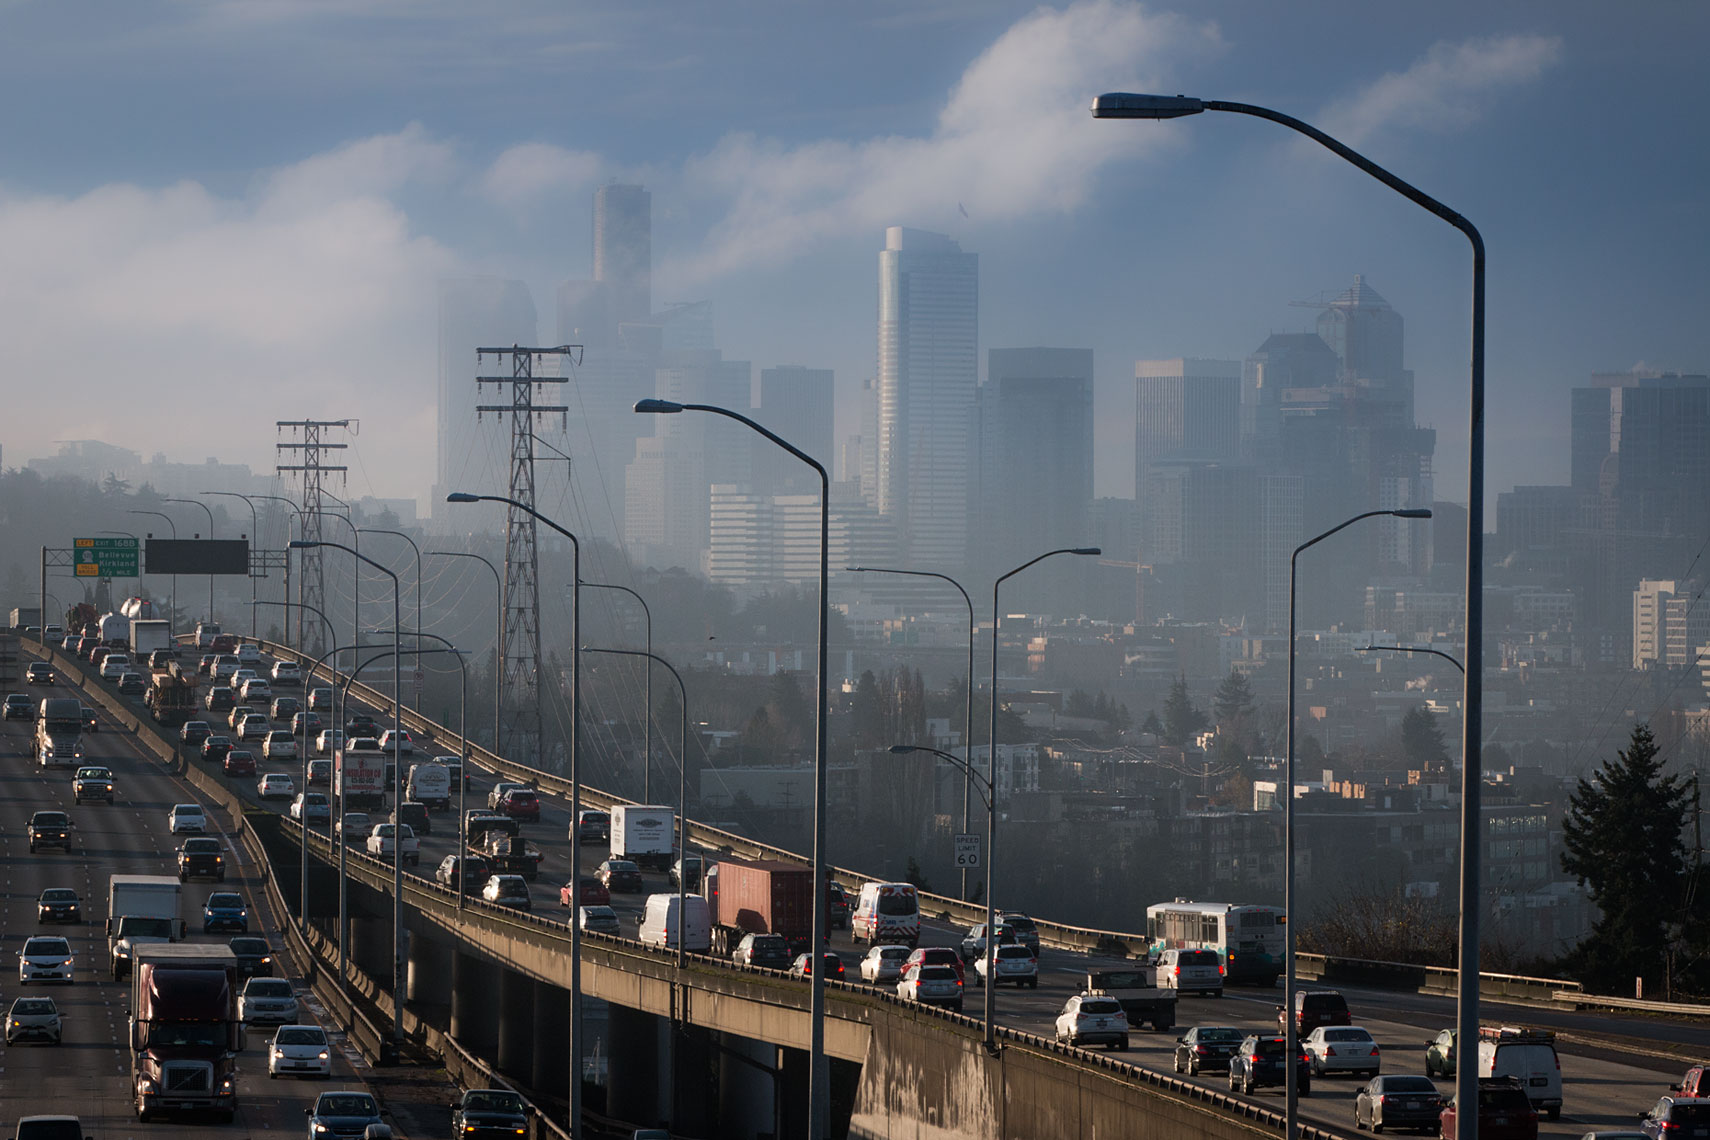 I-5 and downtown skyline, 10:53am